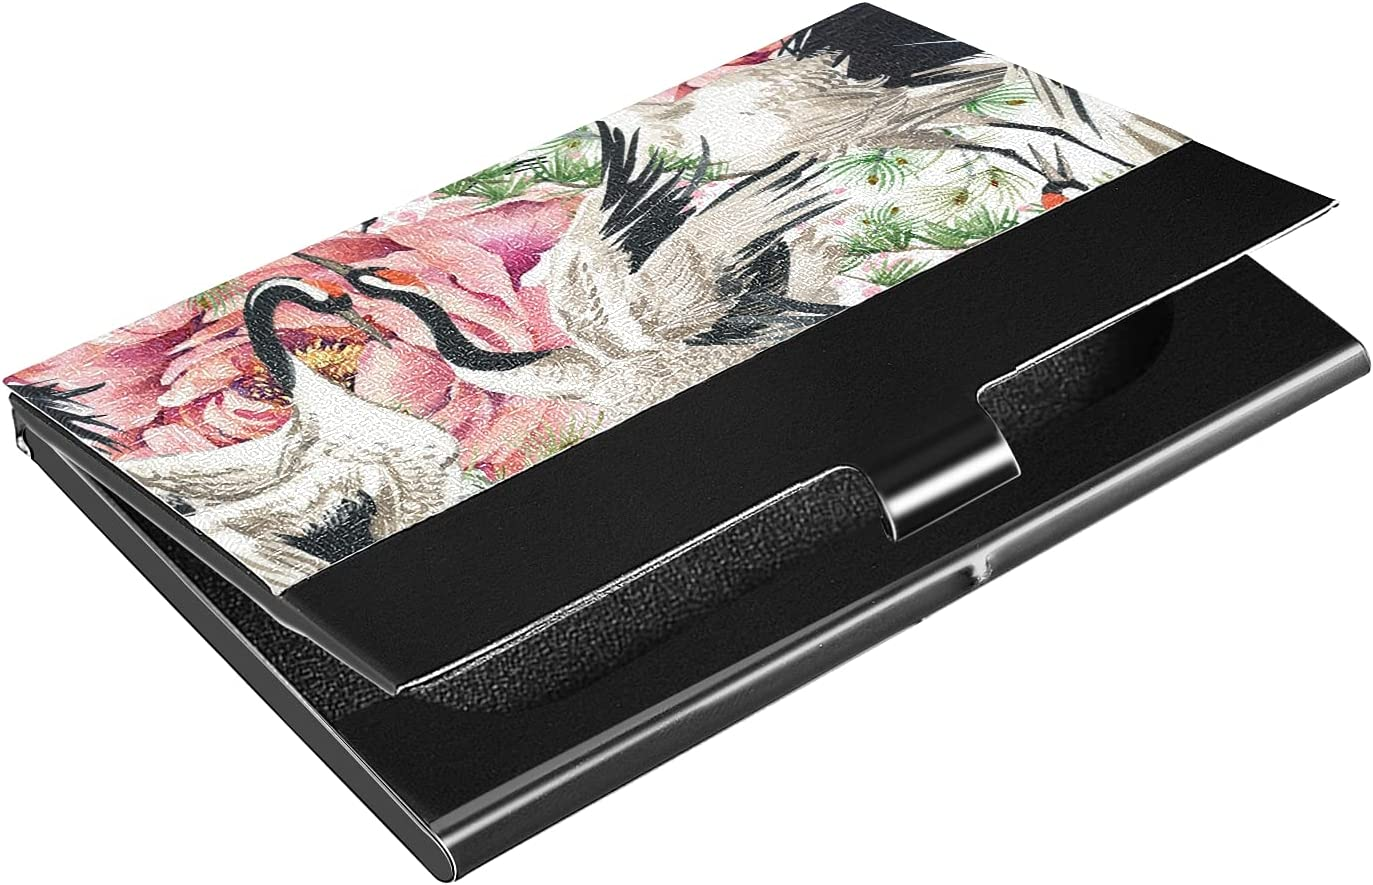 OTVEE Crane Flowers Business Card Holder Wallet Stainless Steel & Leather Pocket Business Card Case Organizer Slim Name Card ID Card Holders Credit Card Wallet Carrier Purse for Women Men